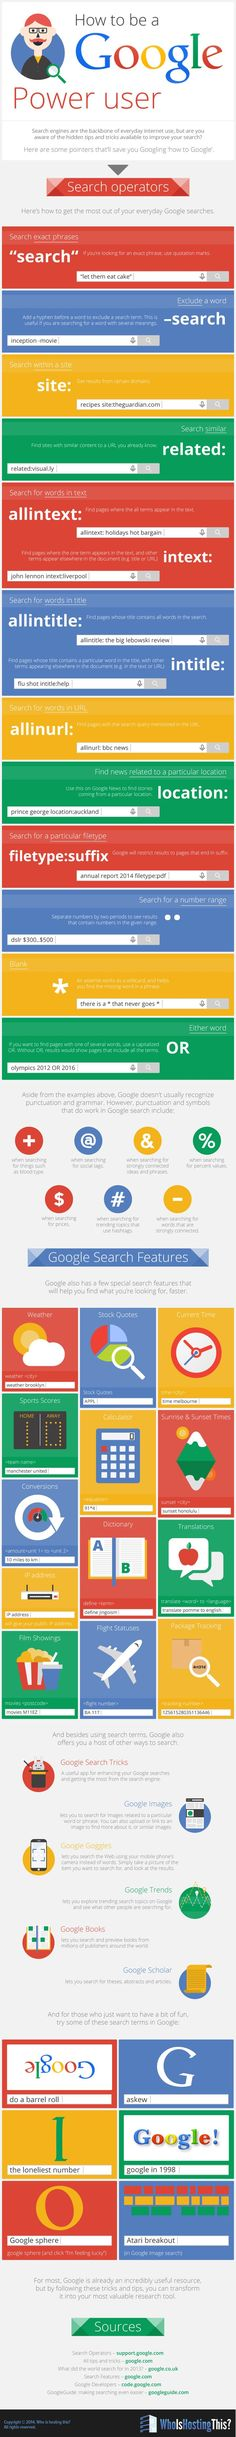 Ho to be a Google Power User - #infographic